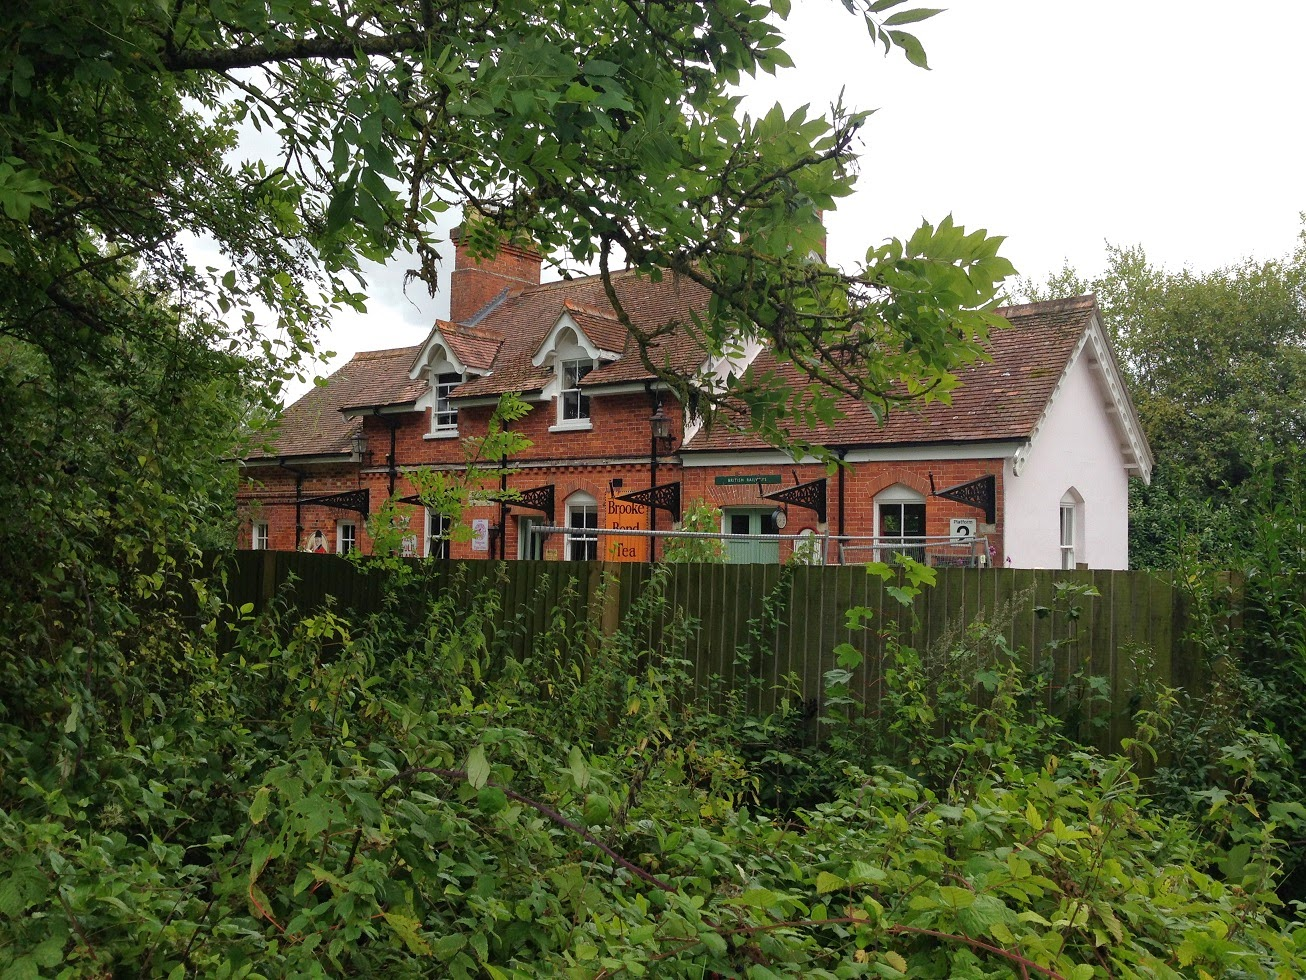 The former Whitchurch Town railway station, on the Newbury to Winchester line